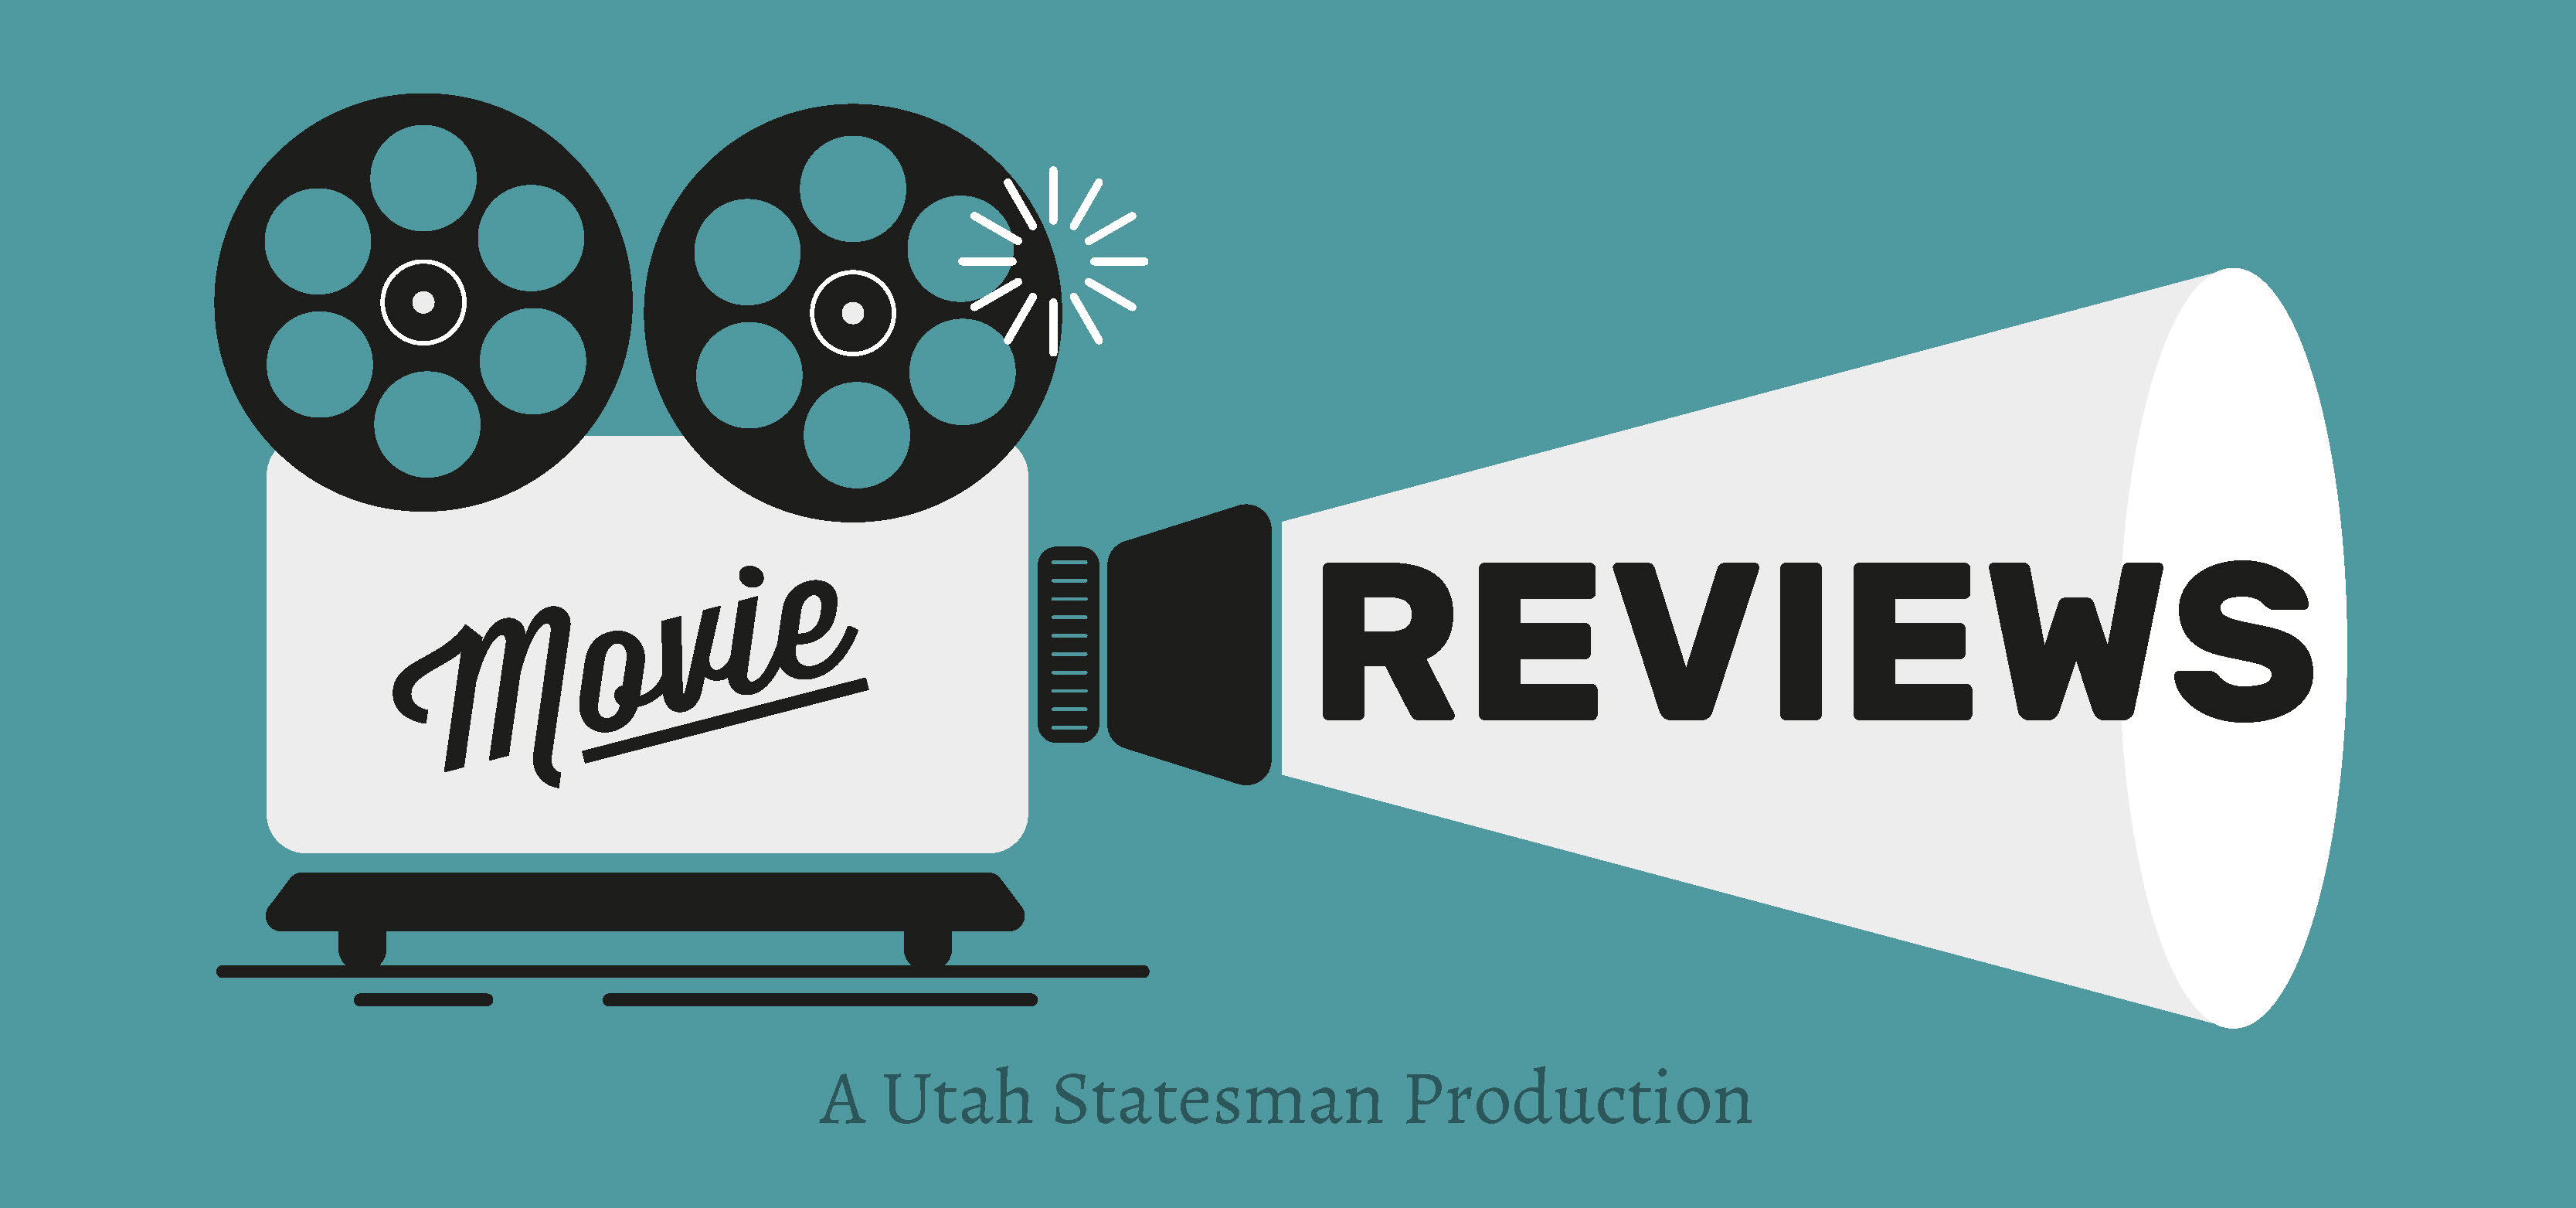 a movie review A review is an evaluation of a publication, service, or company such as a movie (a movie review), video game (video game review), musical composition (music review of a composition or recording), book (book review) a piece of hardware like a car, home appliance, or computer or an event or performance, such as a live music concert, play.